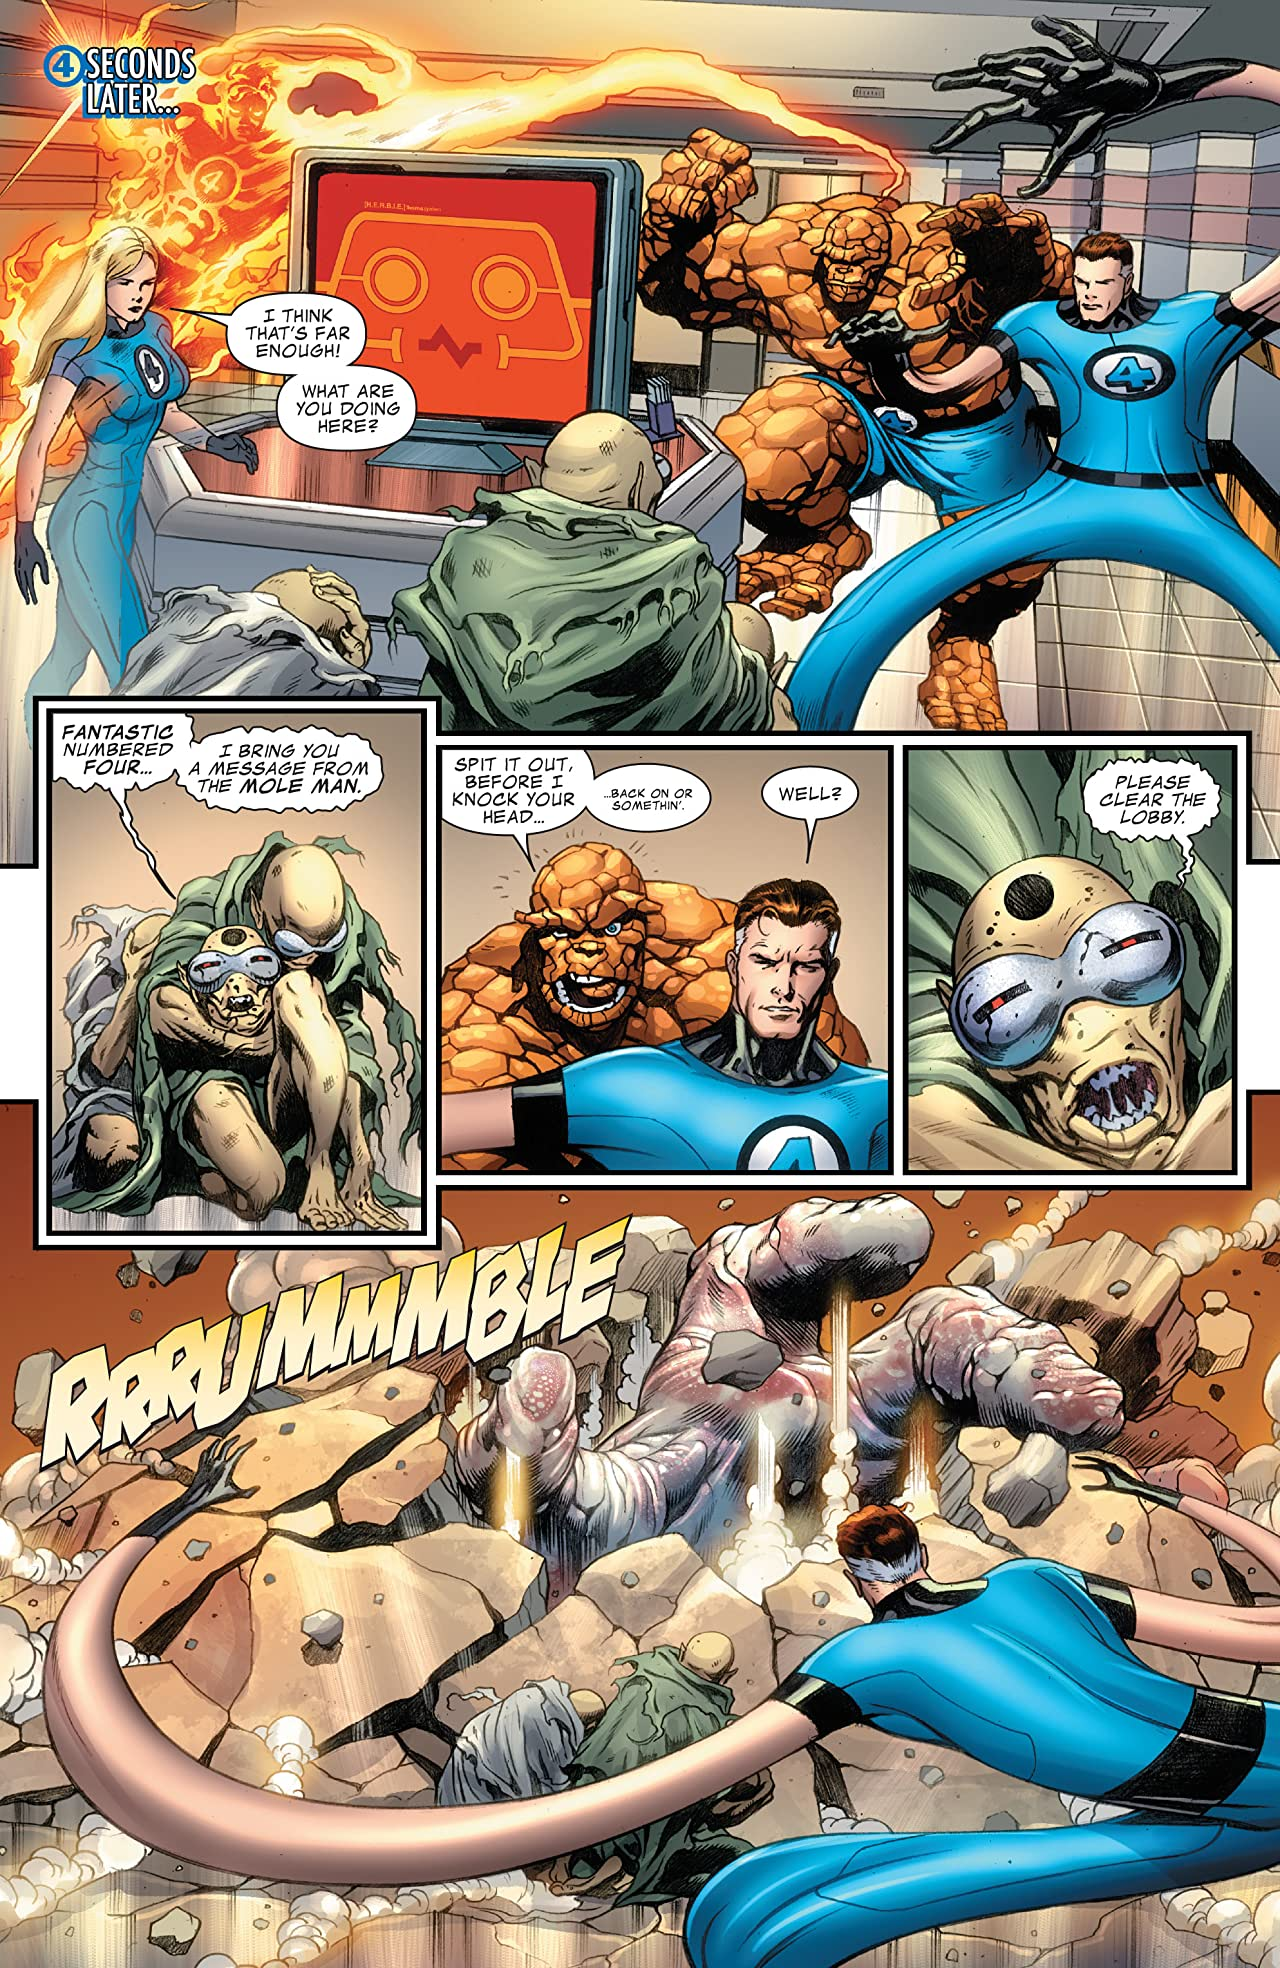 Fantastic Four By Jonathan Hickman Vol. 2